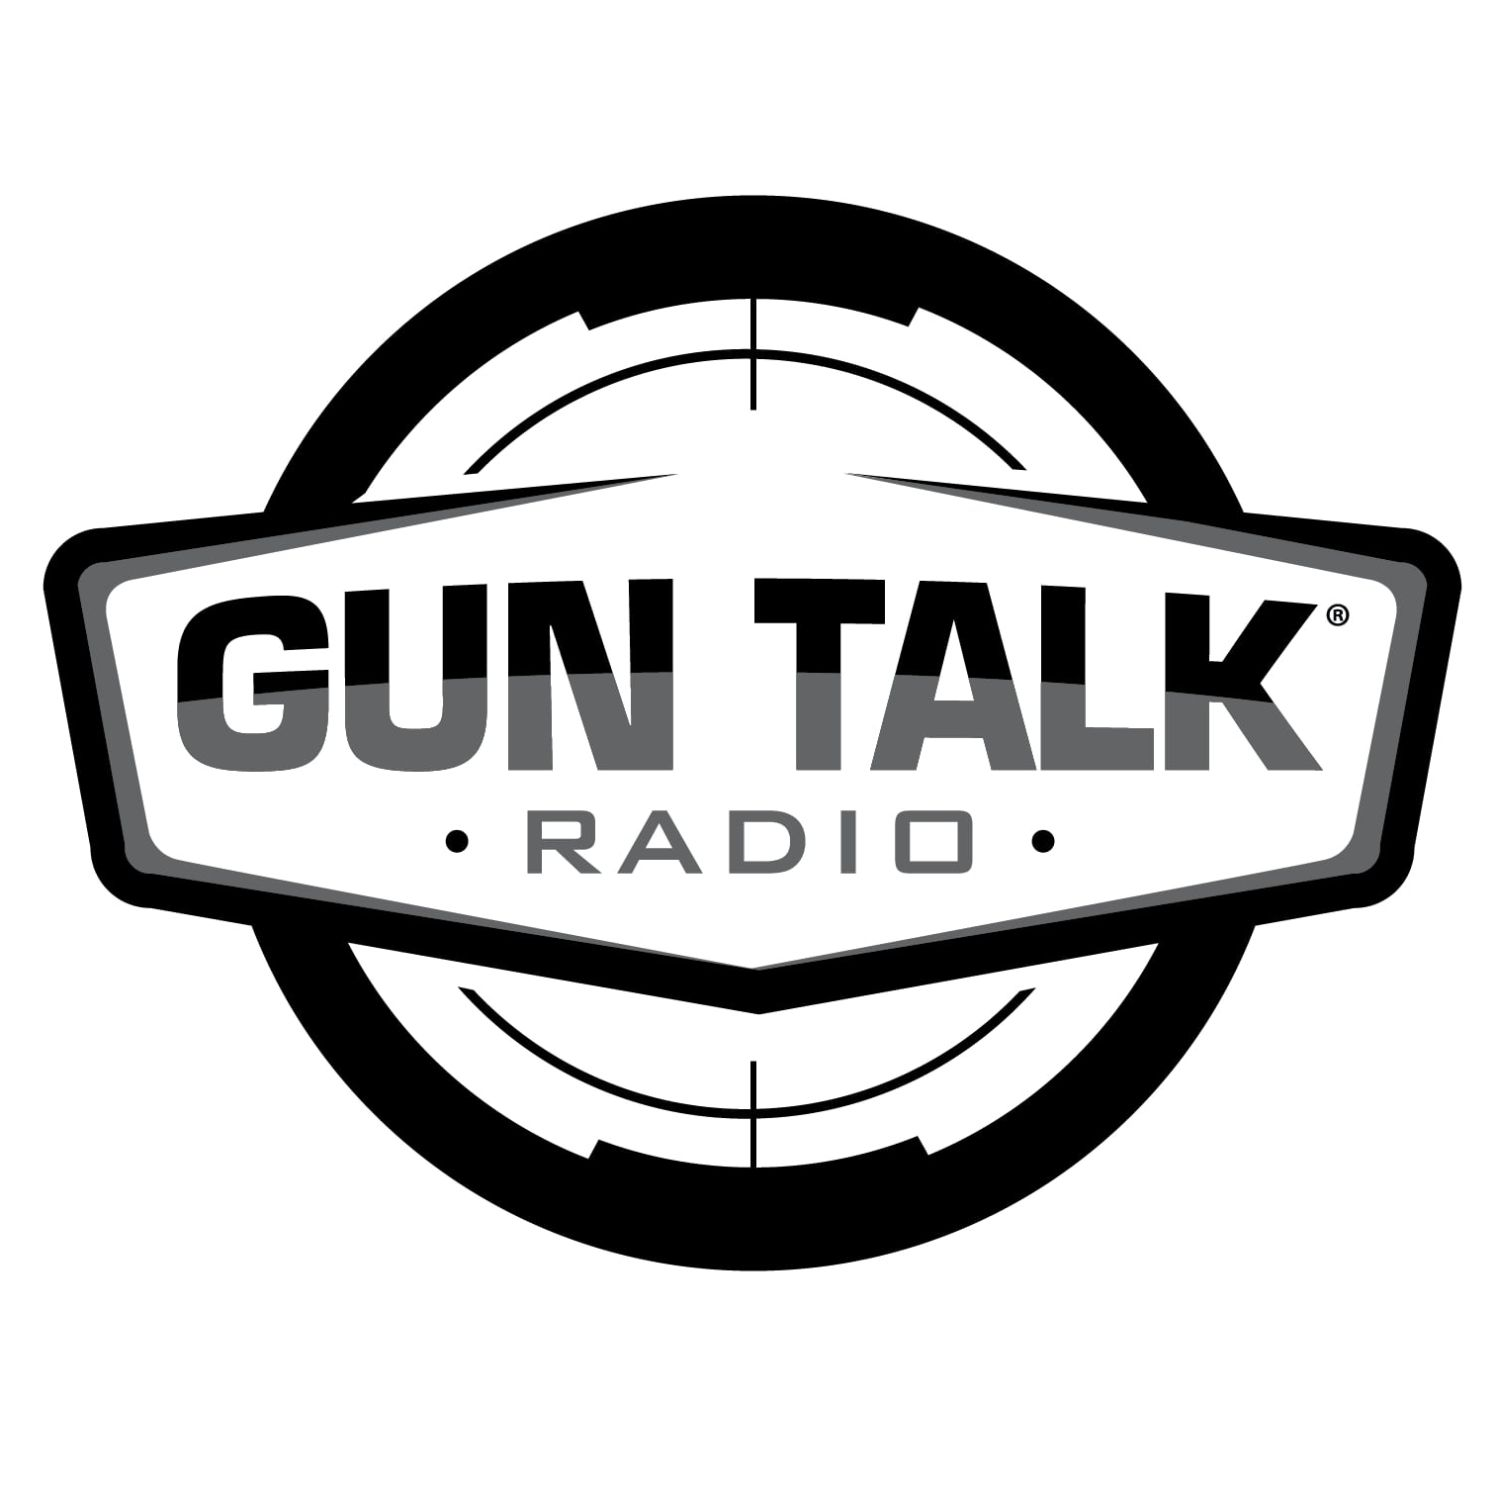 Artwork for Guntalk 2007-11-25 Part B